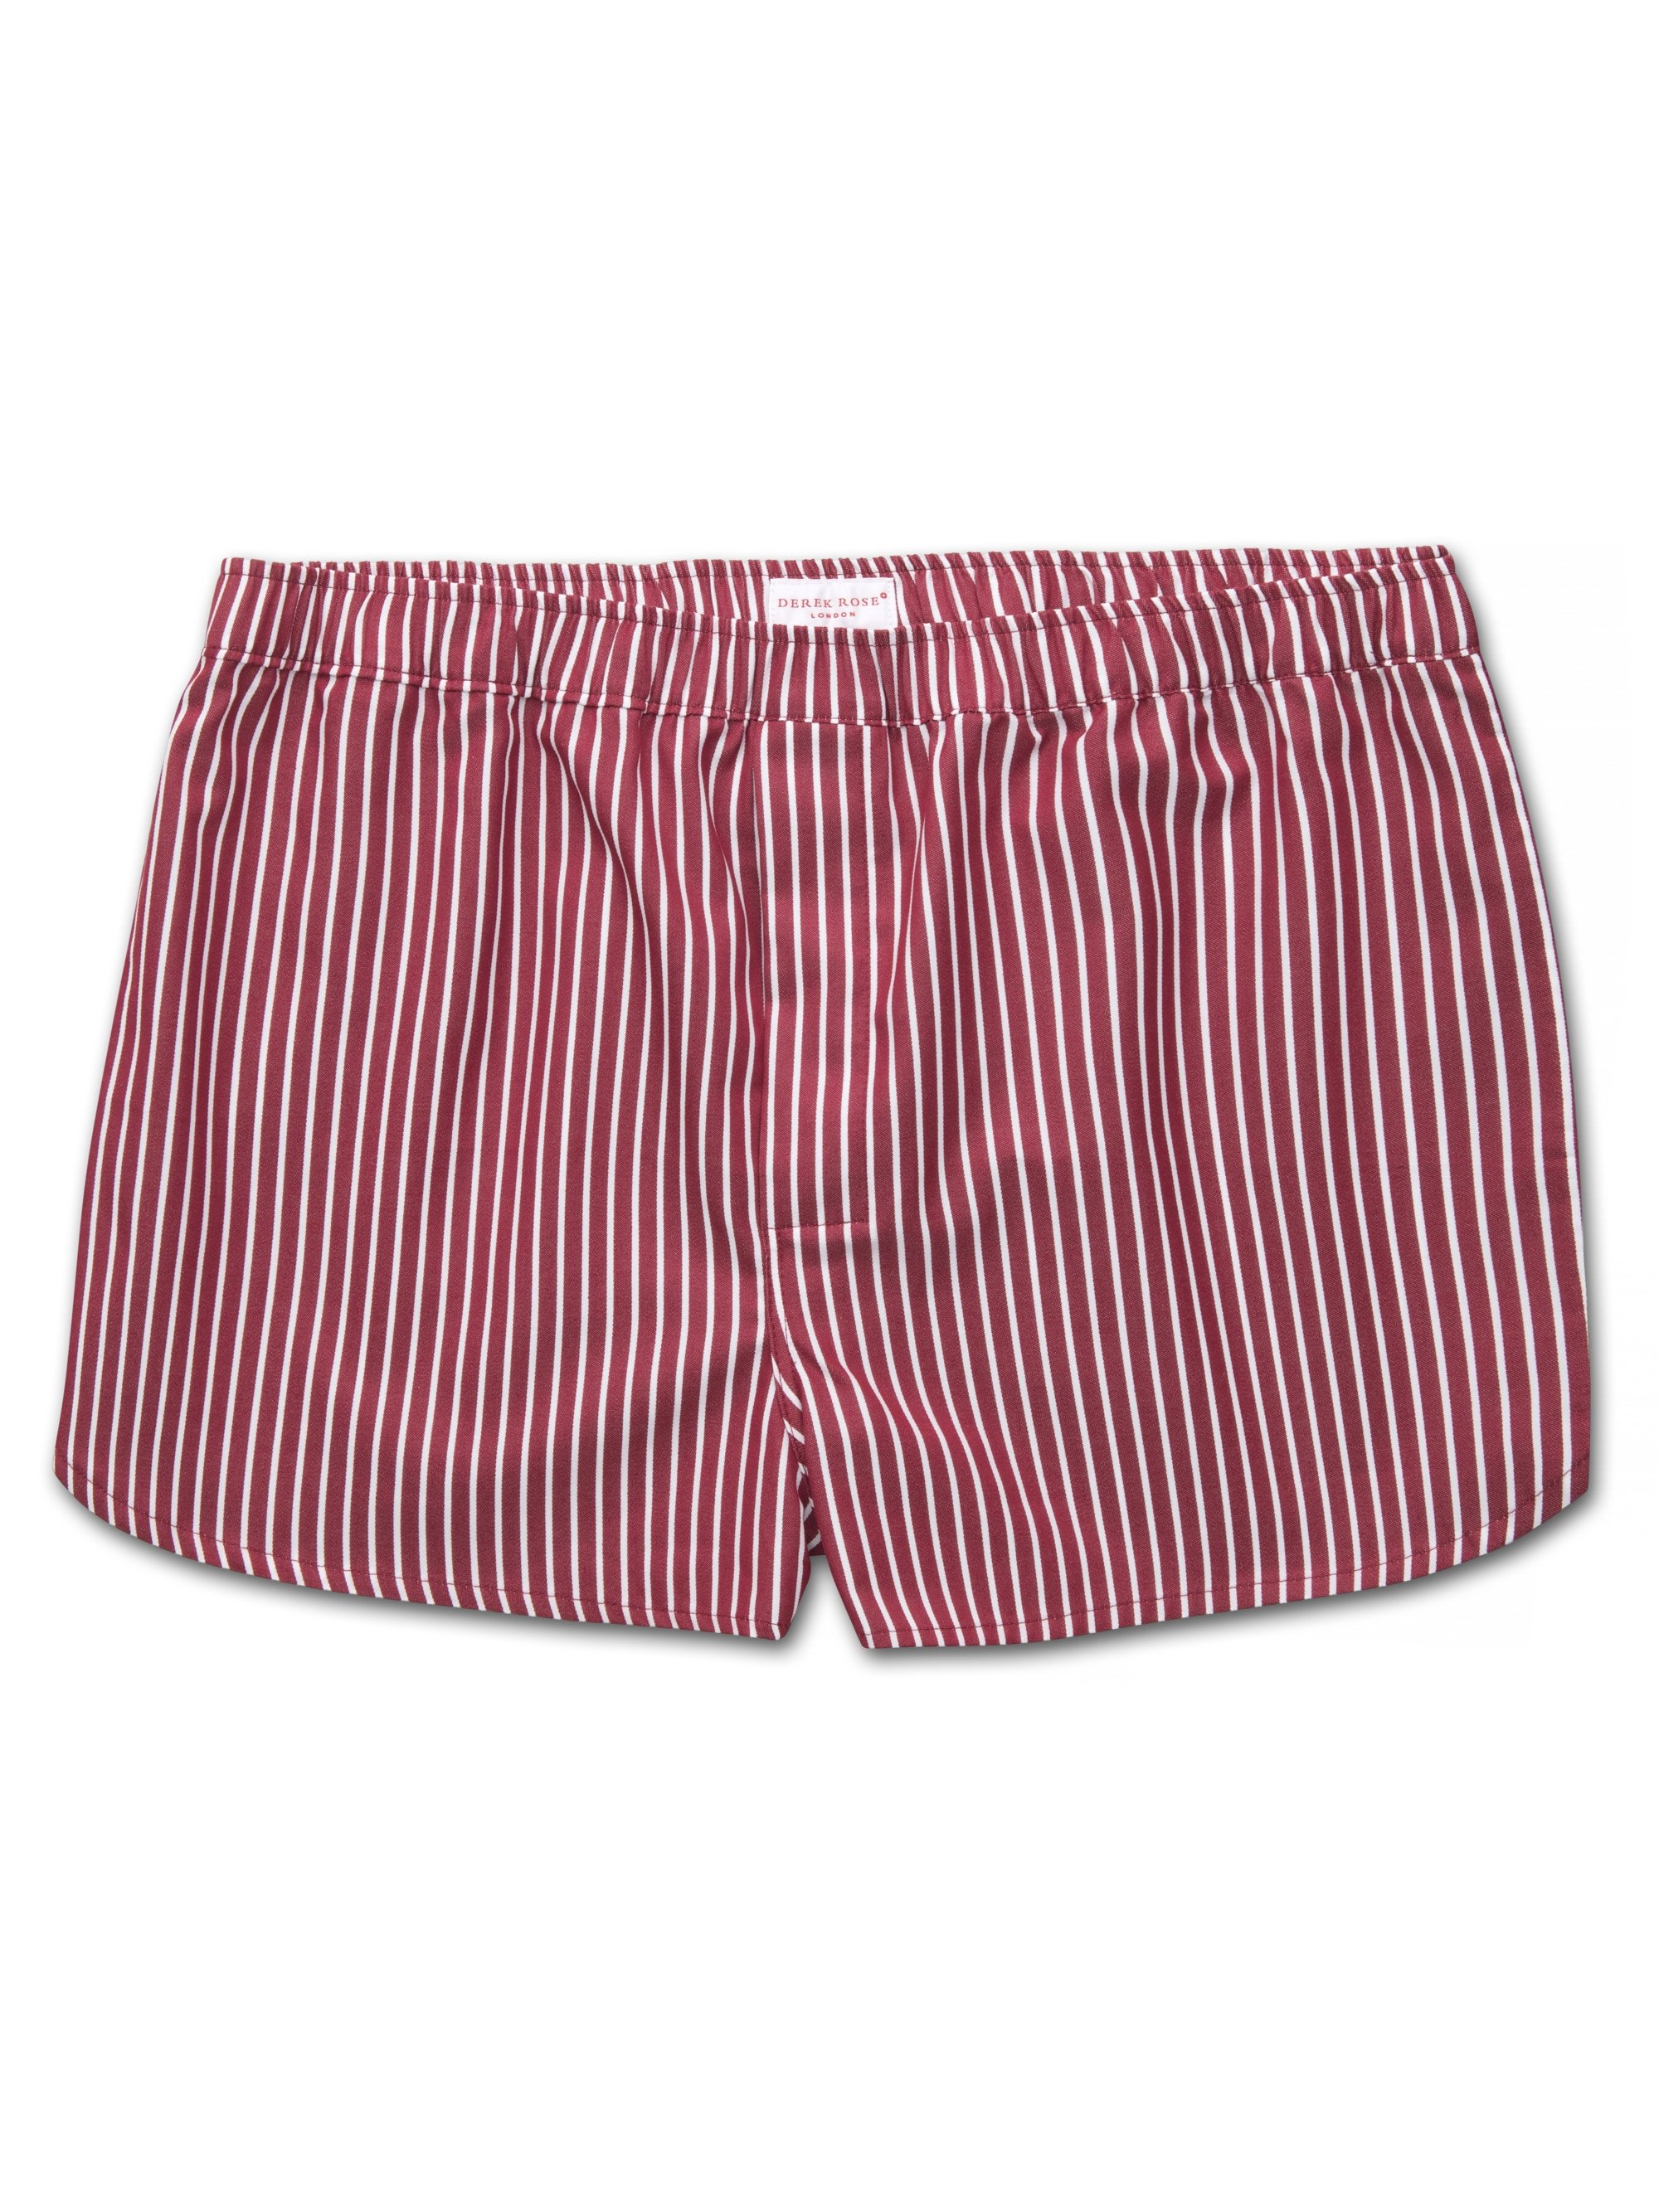 Men's Modern Fit Boxer Shorts Royal 215 Cotton Satin Stripe Red